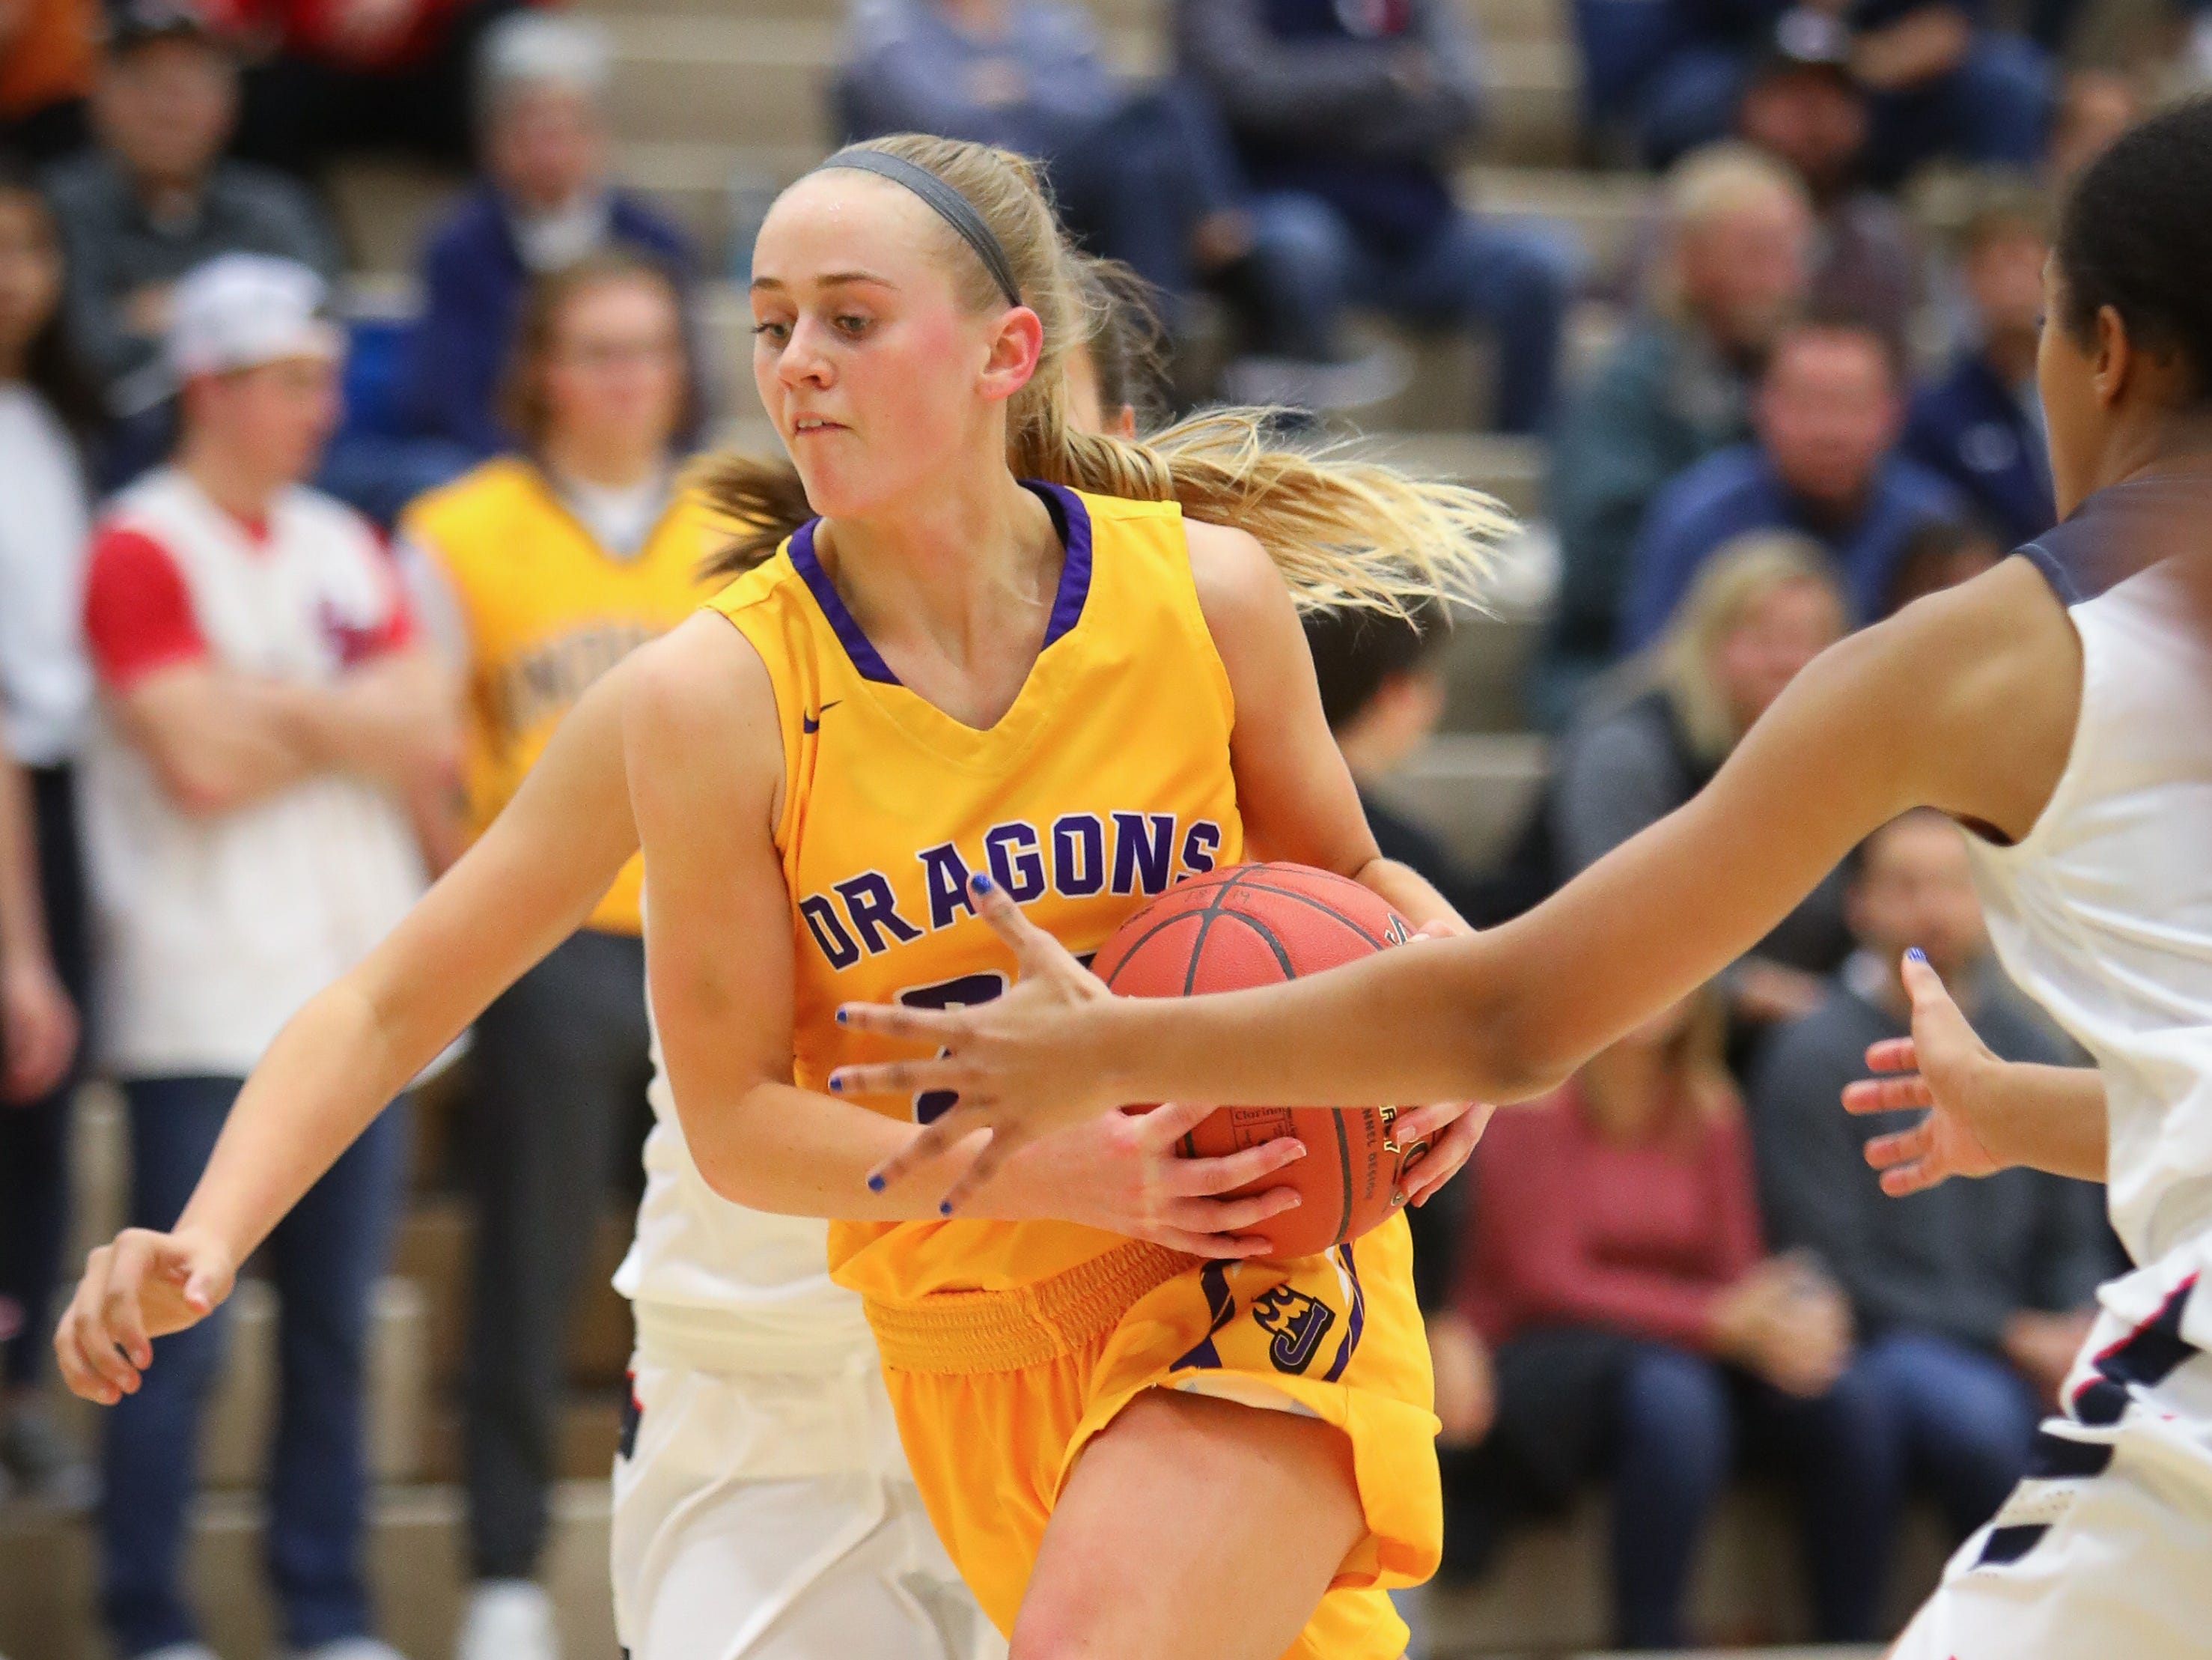 Johnston senior Macy Thompson weaves through traffic to the hoop during a girls high school basketball game between the Johnston Dragons and the Urbandale J-Hawks at Urbandale High School on Dec. 18, 2018 in Urbandale, Iowa.